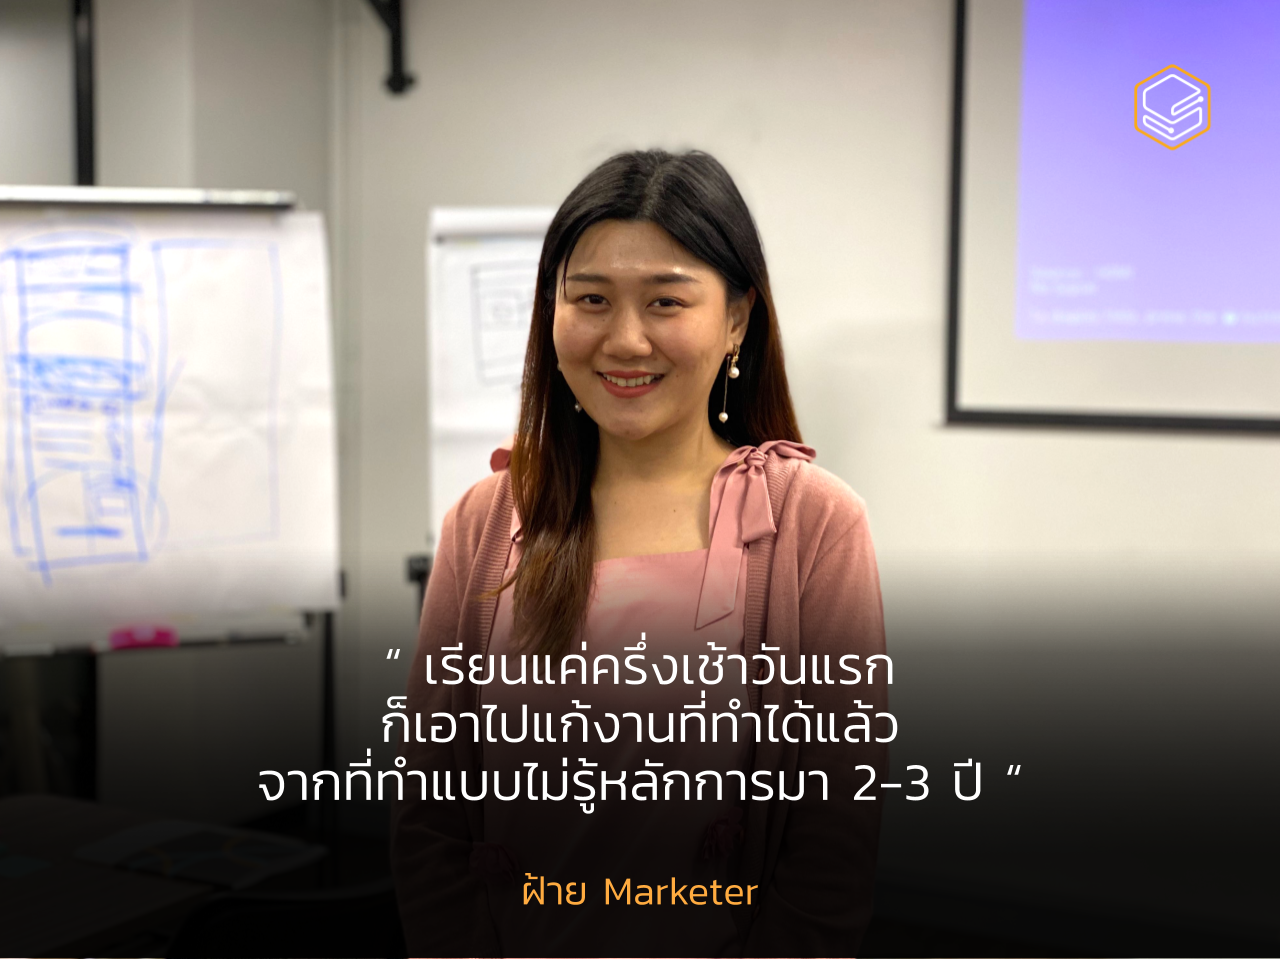 ฝ้าย - Marketer  | Skooldio Workshop Testimonial: Intensive UI